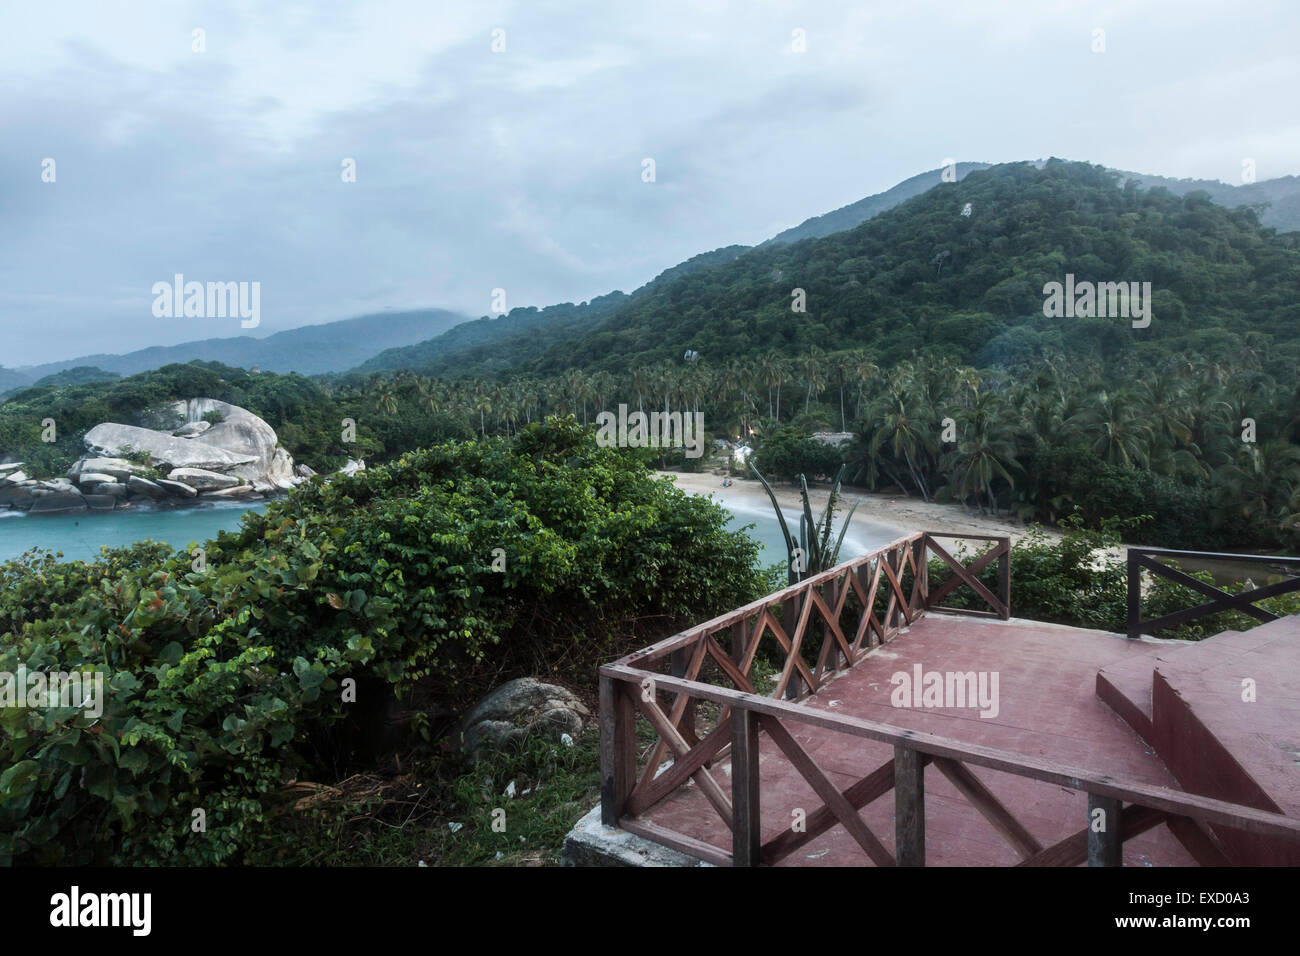 View of the beach and foothills of the Sierra Madre de Santa Marta in Tayrona National Park near Santa Marta, Colombia. - Stock Image